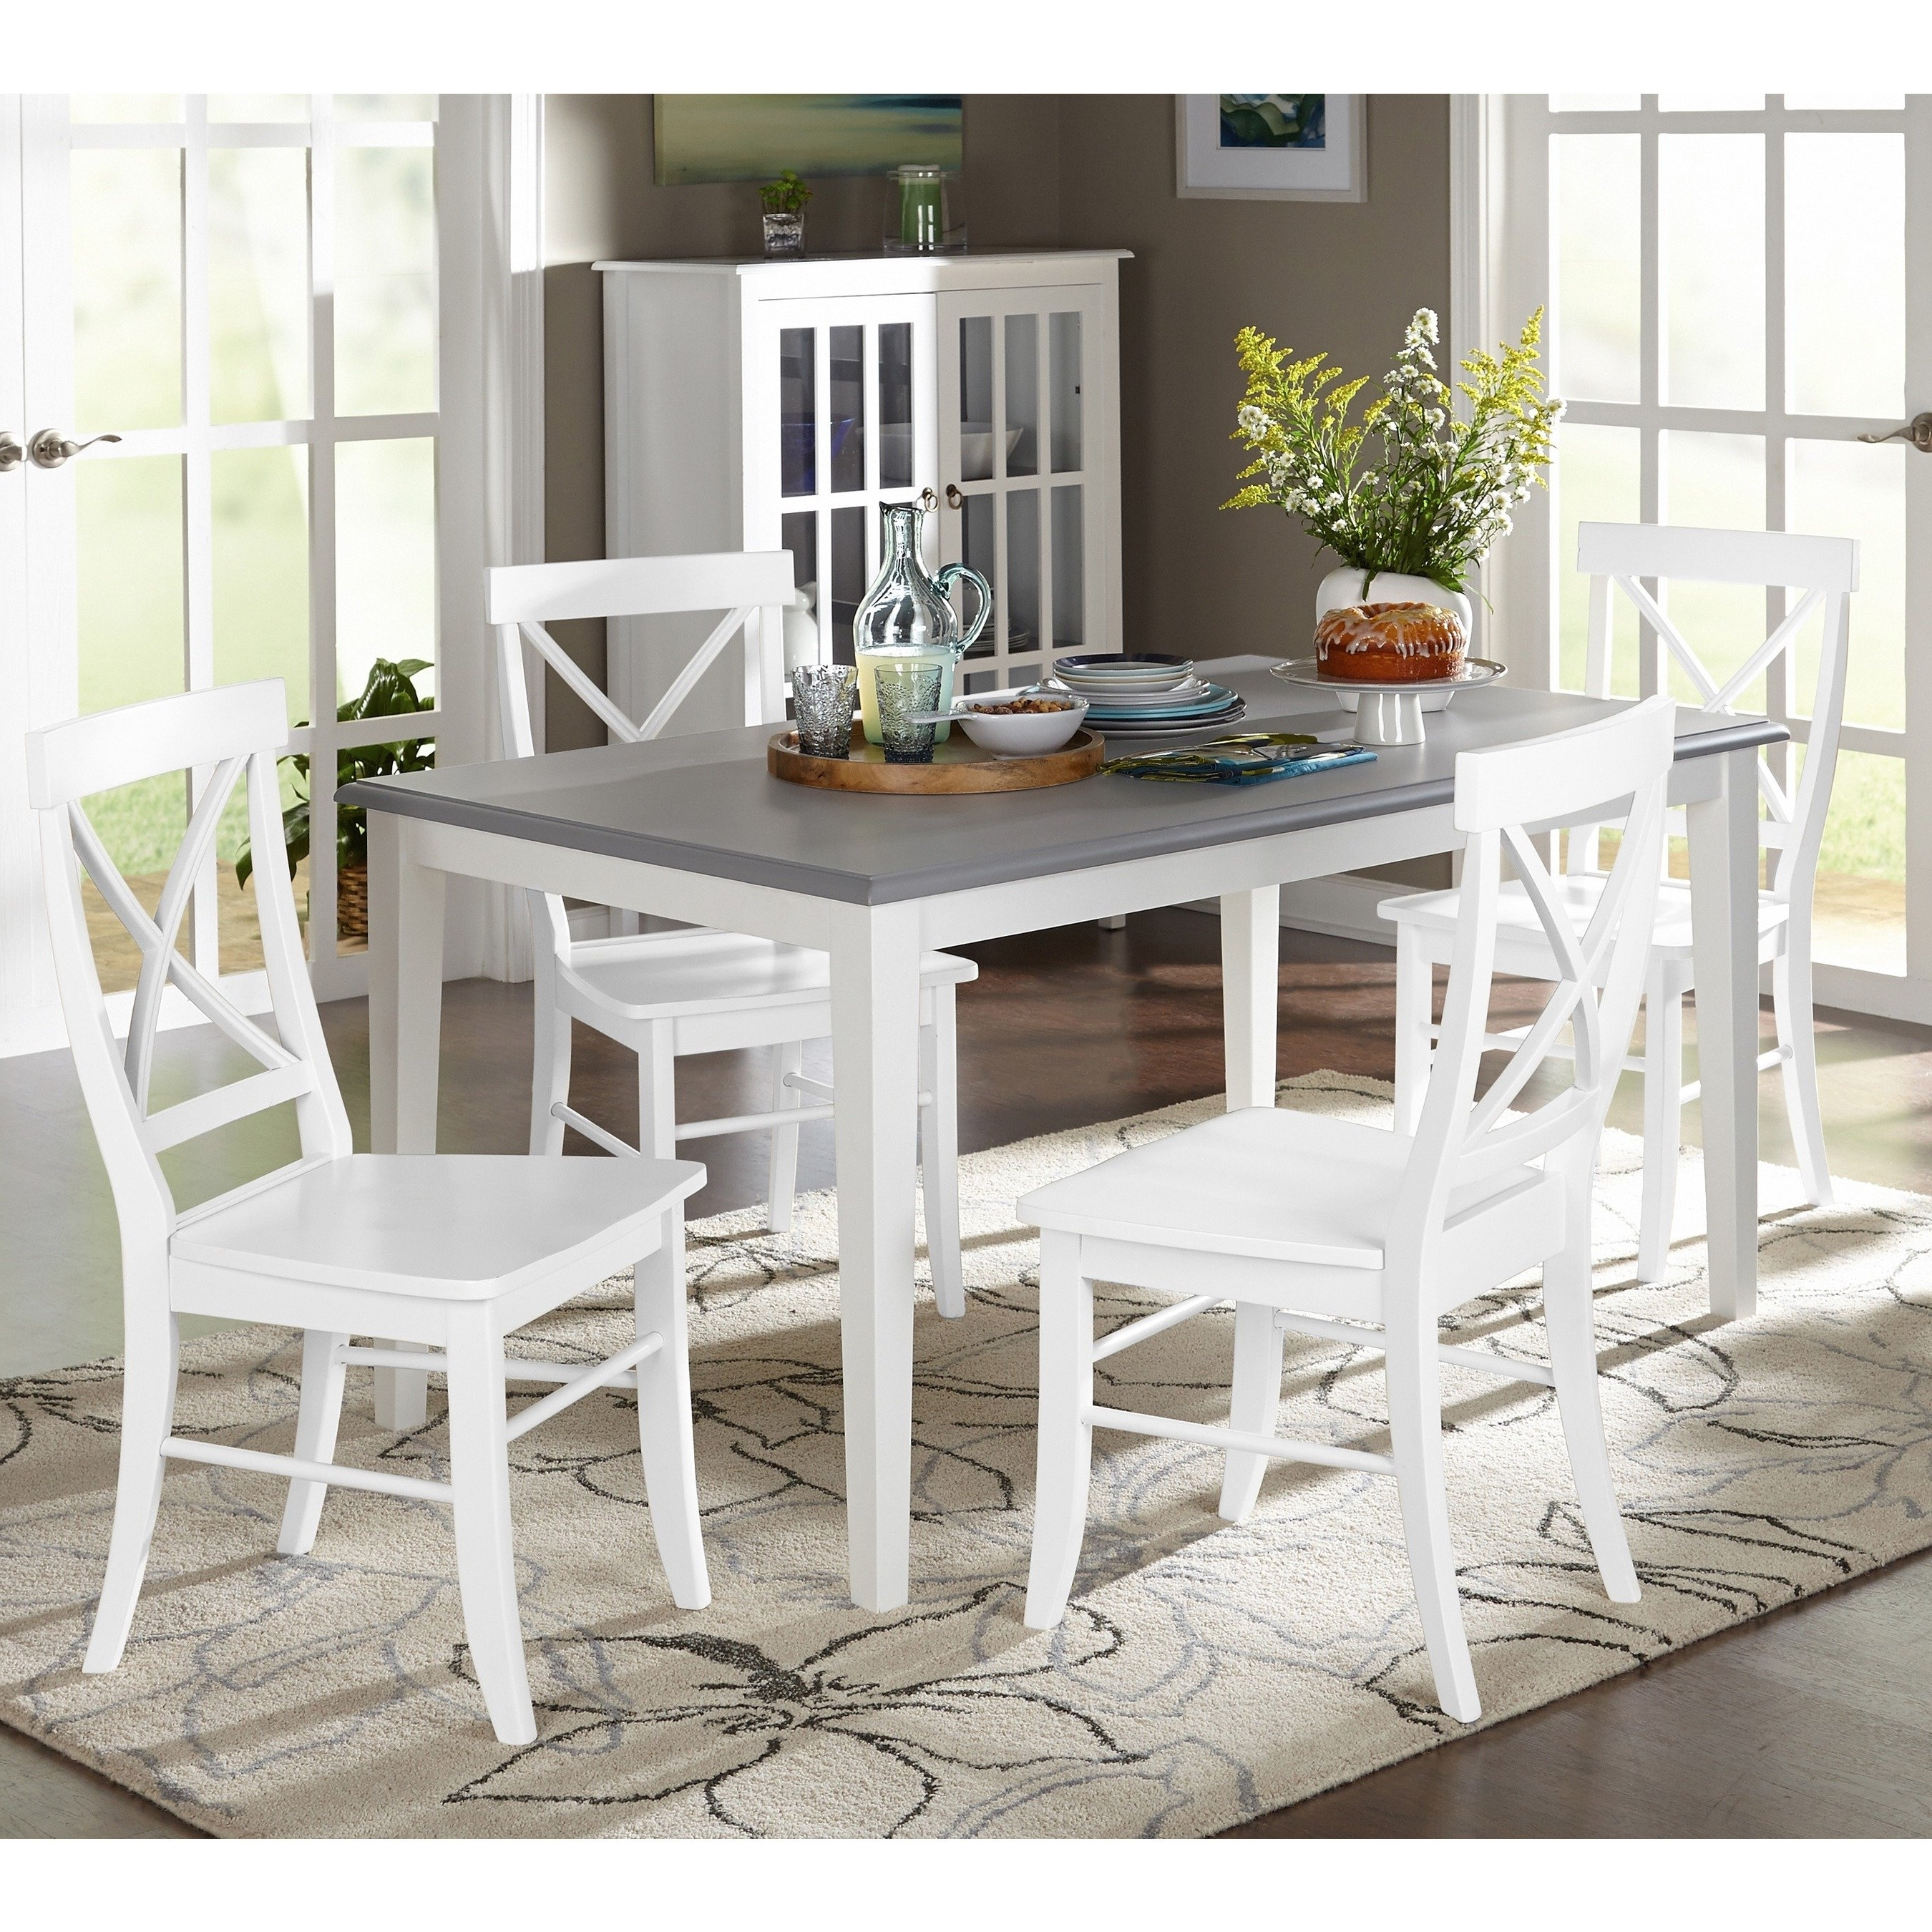 Laurent 5 Piece Round Dining Sets With Wood Chairs With Regard To 2018 Shop Simple Living 5 Piece Helena Dining Set – Free Shipping Today (View 15 of 25)